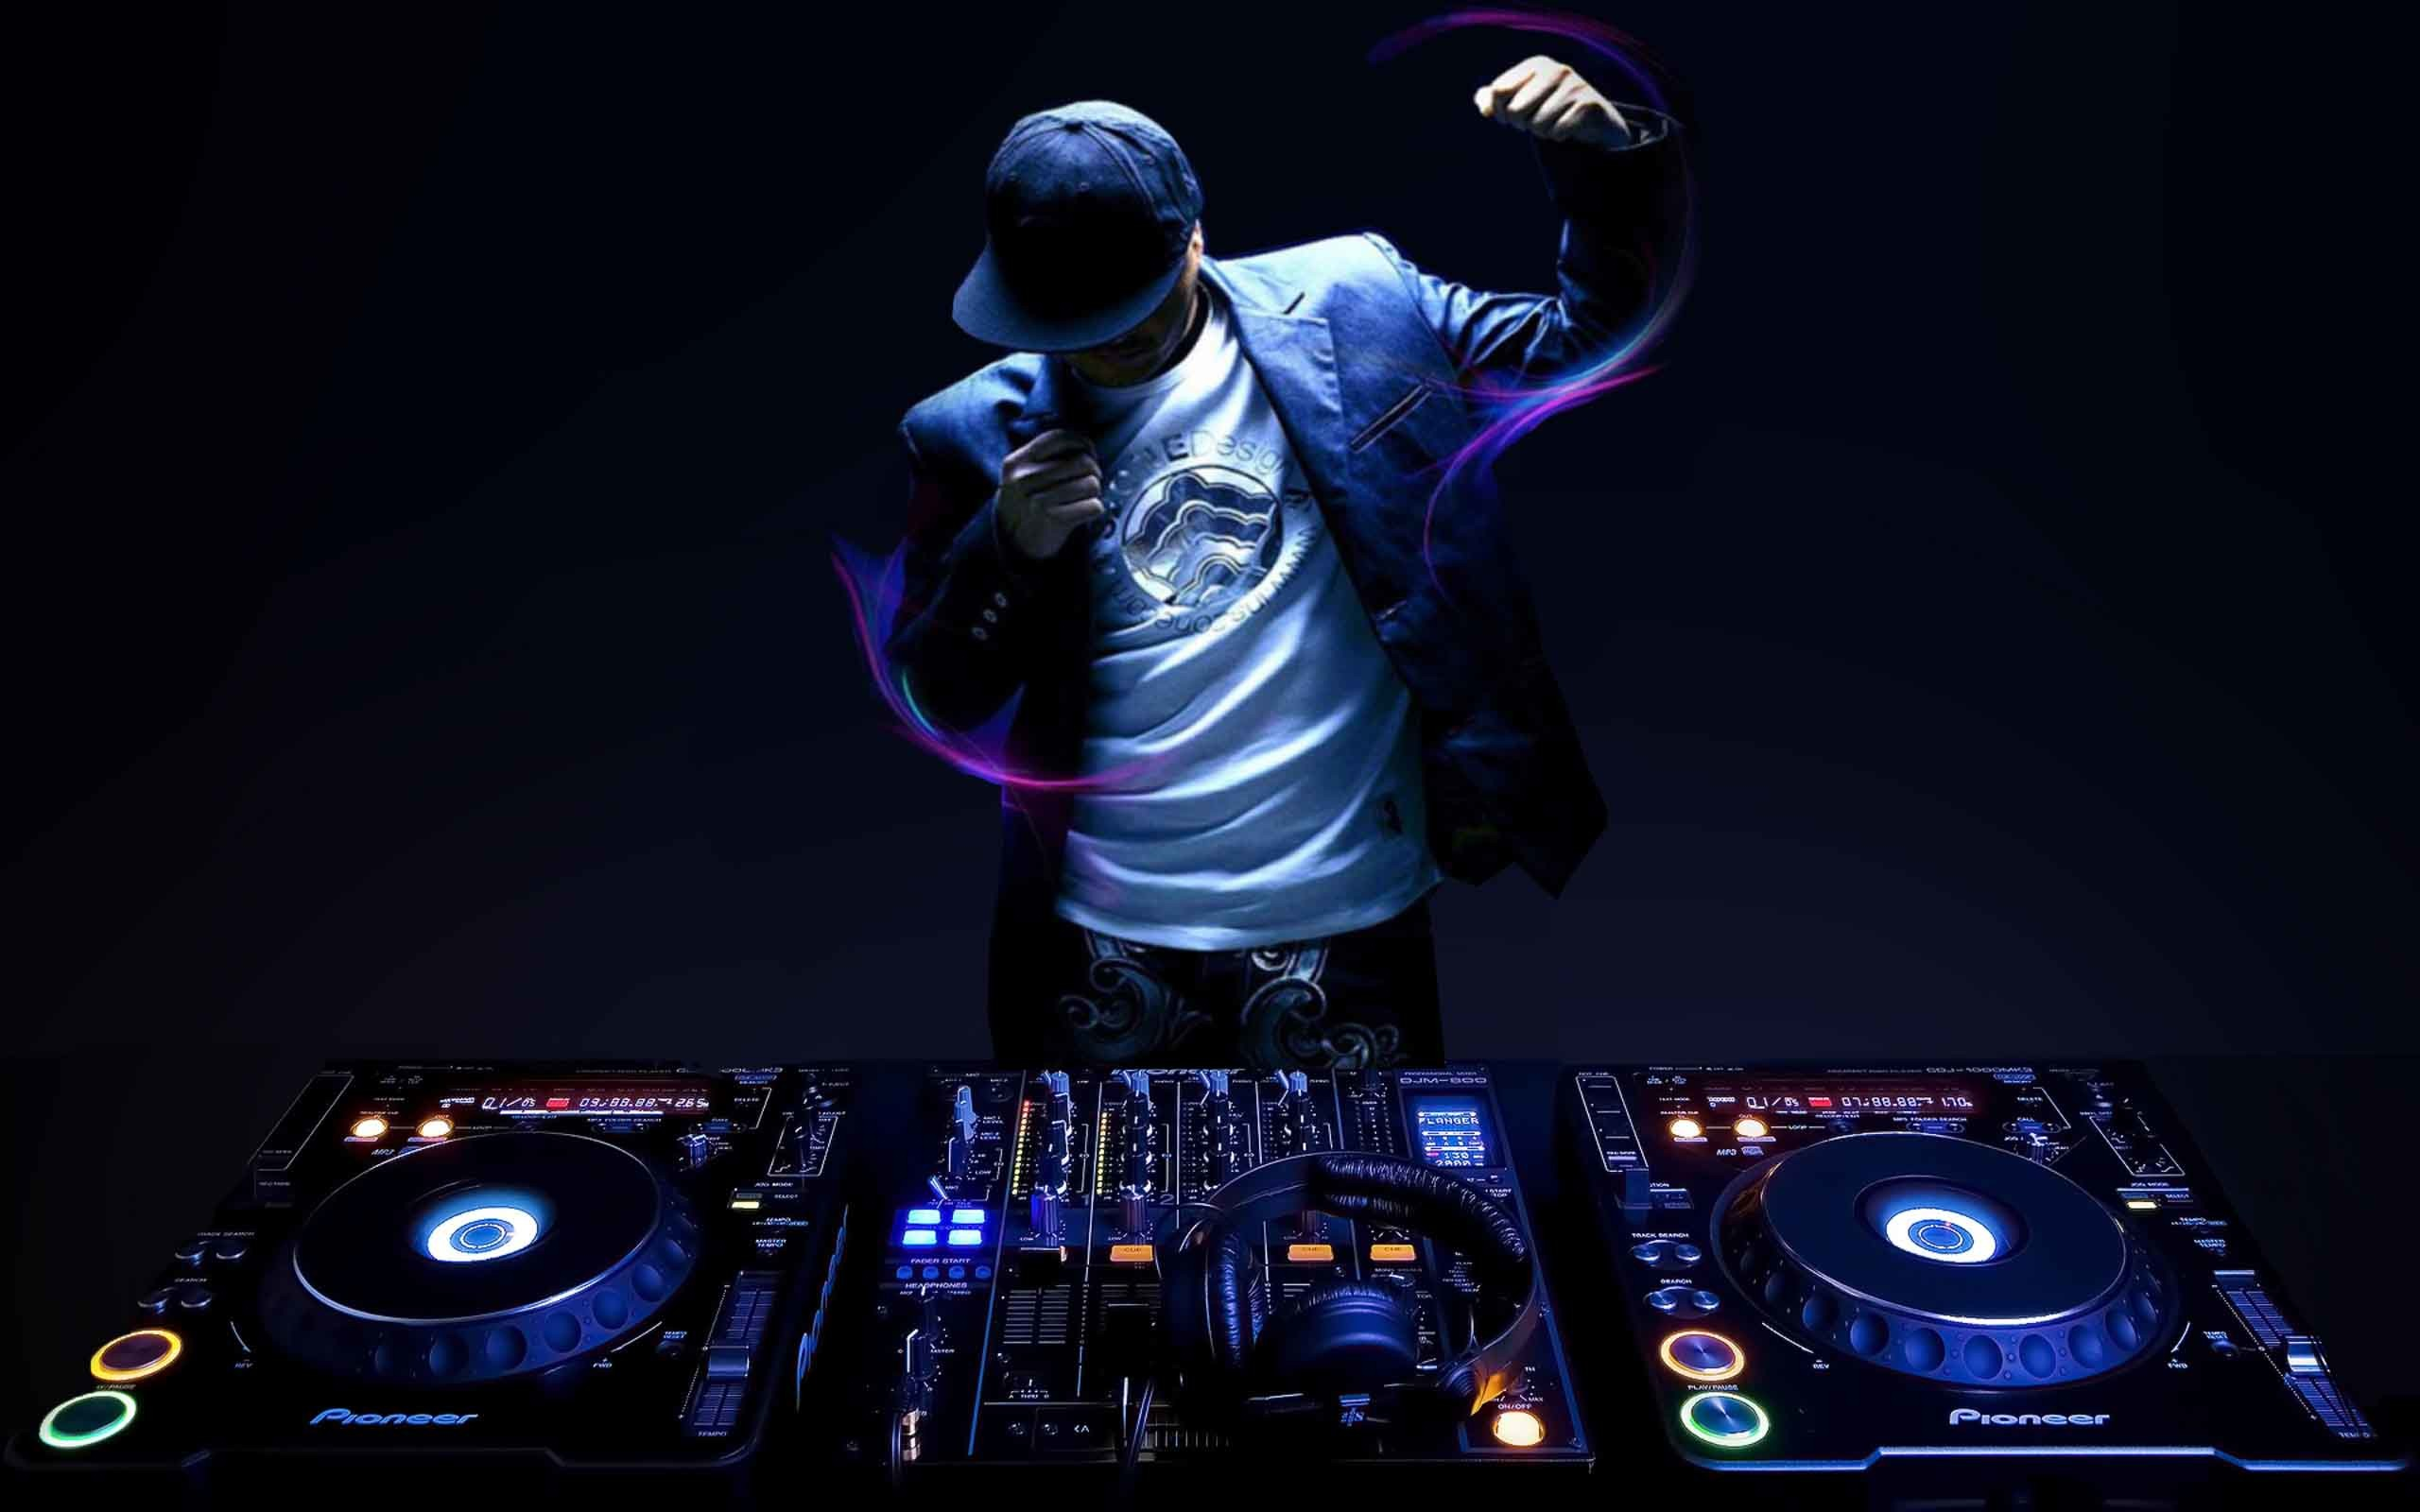 2560x1600 DJ Music Latest HD Wallpapers Free Download